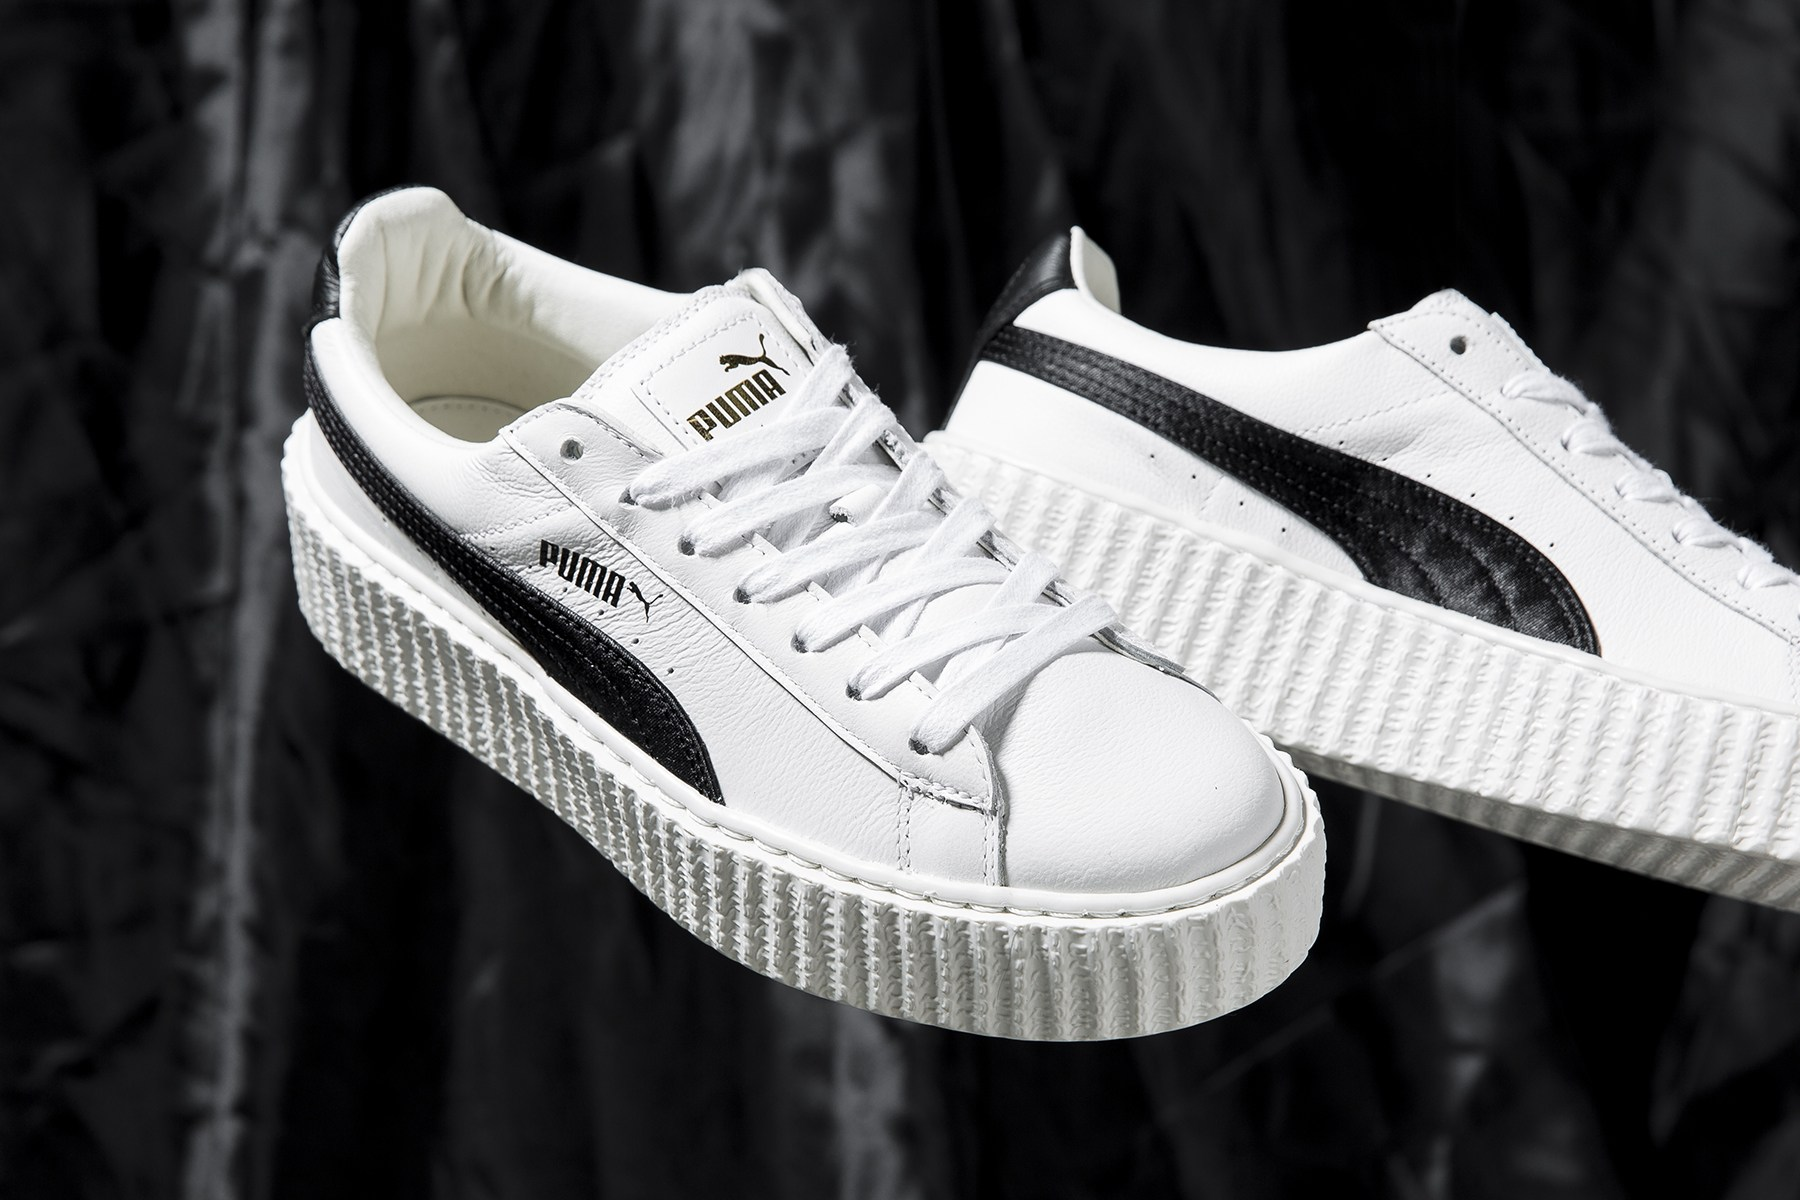 fenty-puma-cracked-leather-creeper-black-white-4